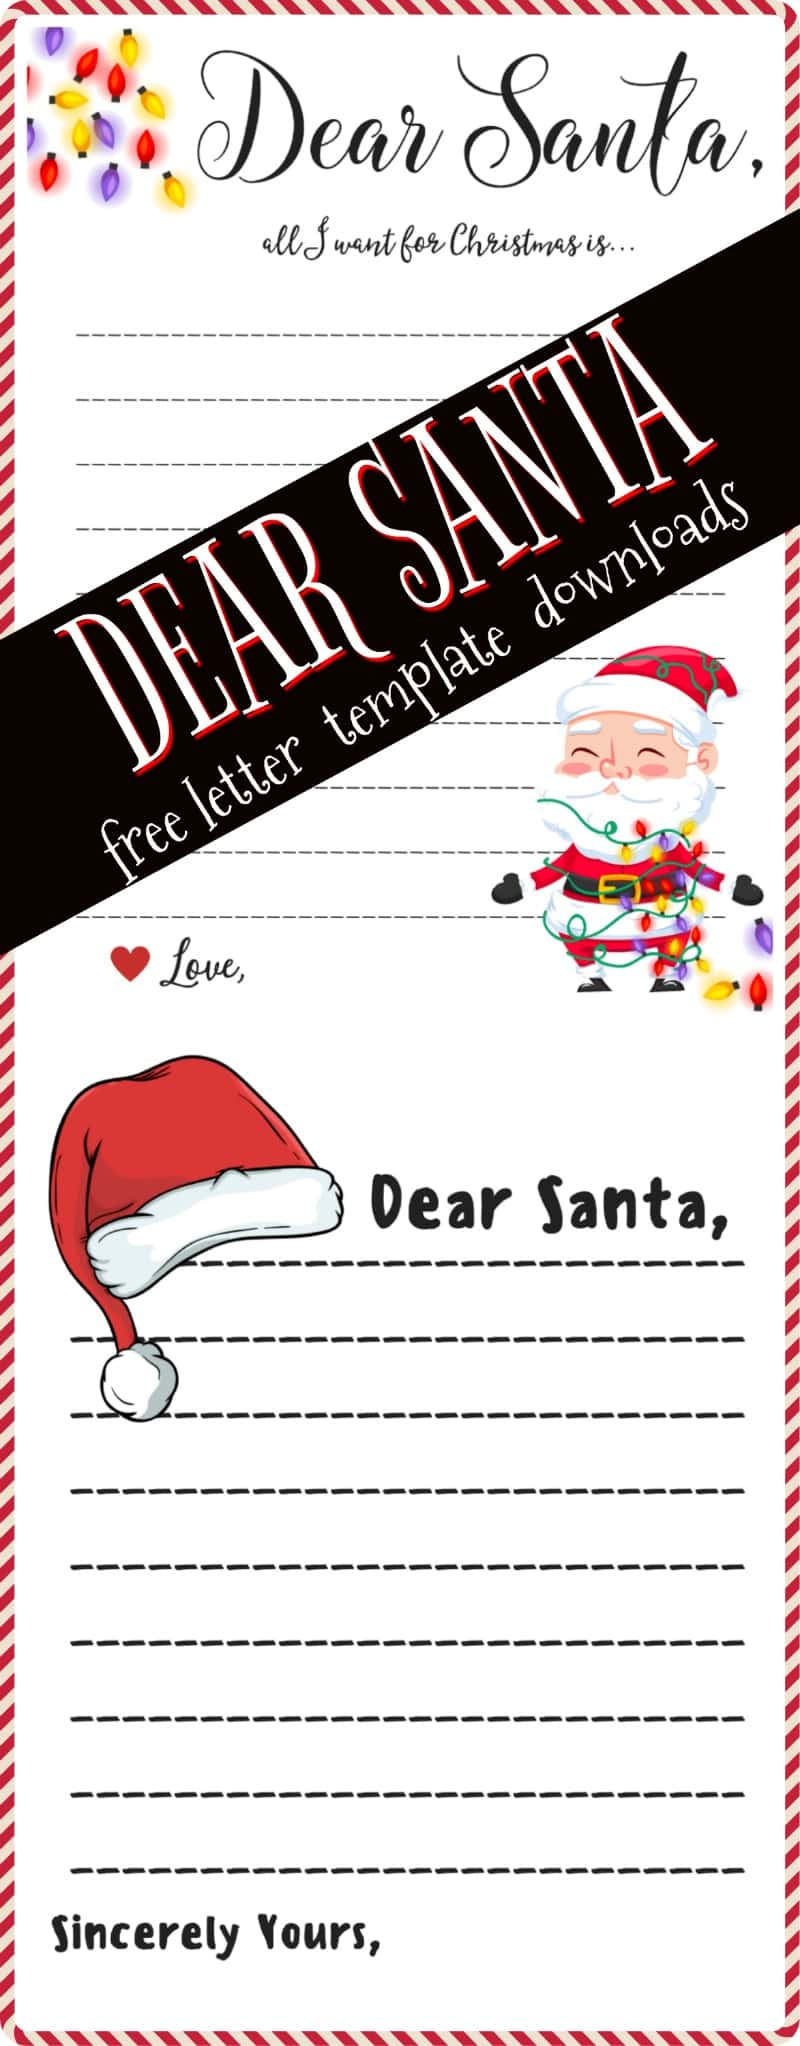 Dear Santa Letter Free Printable Downloads